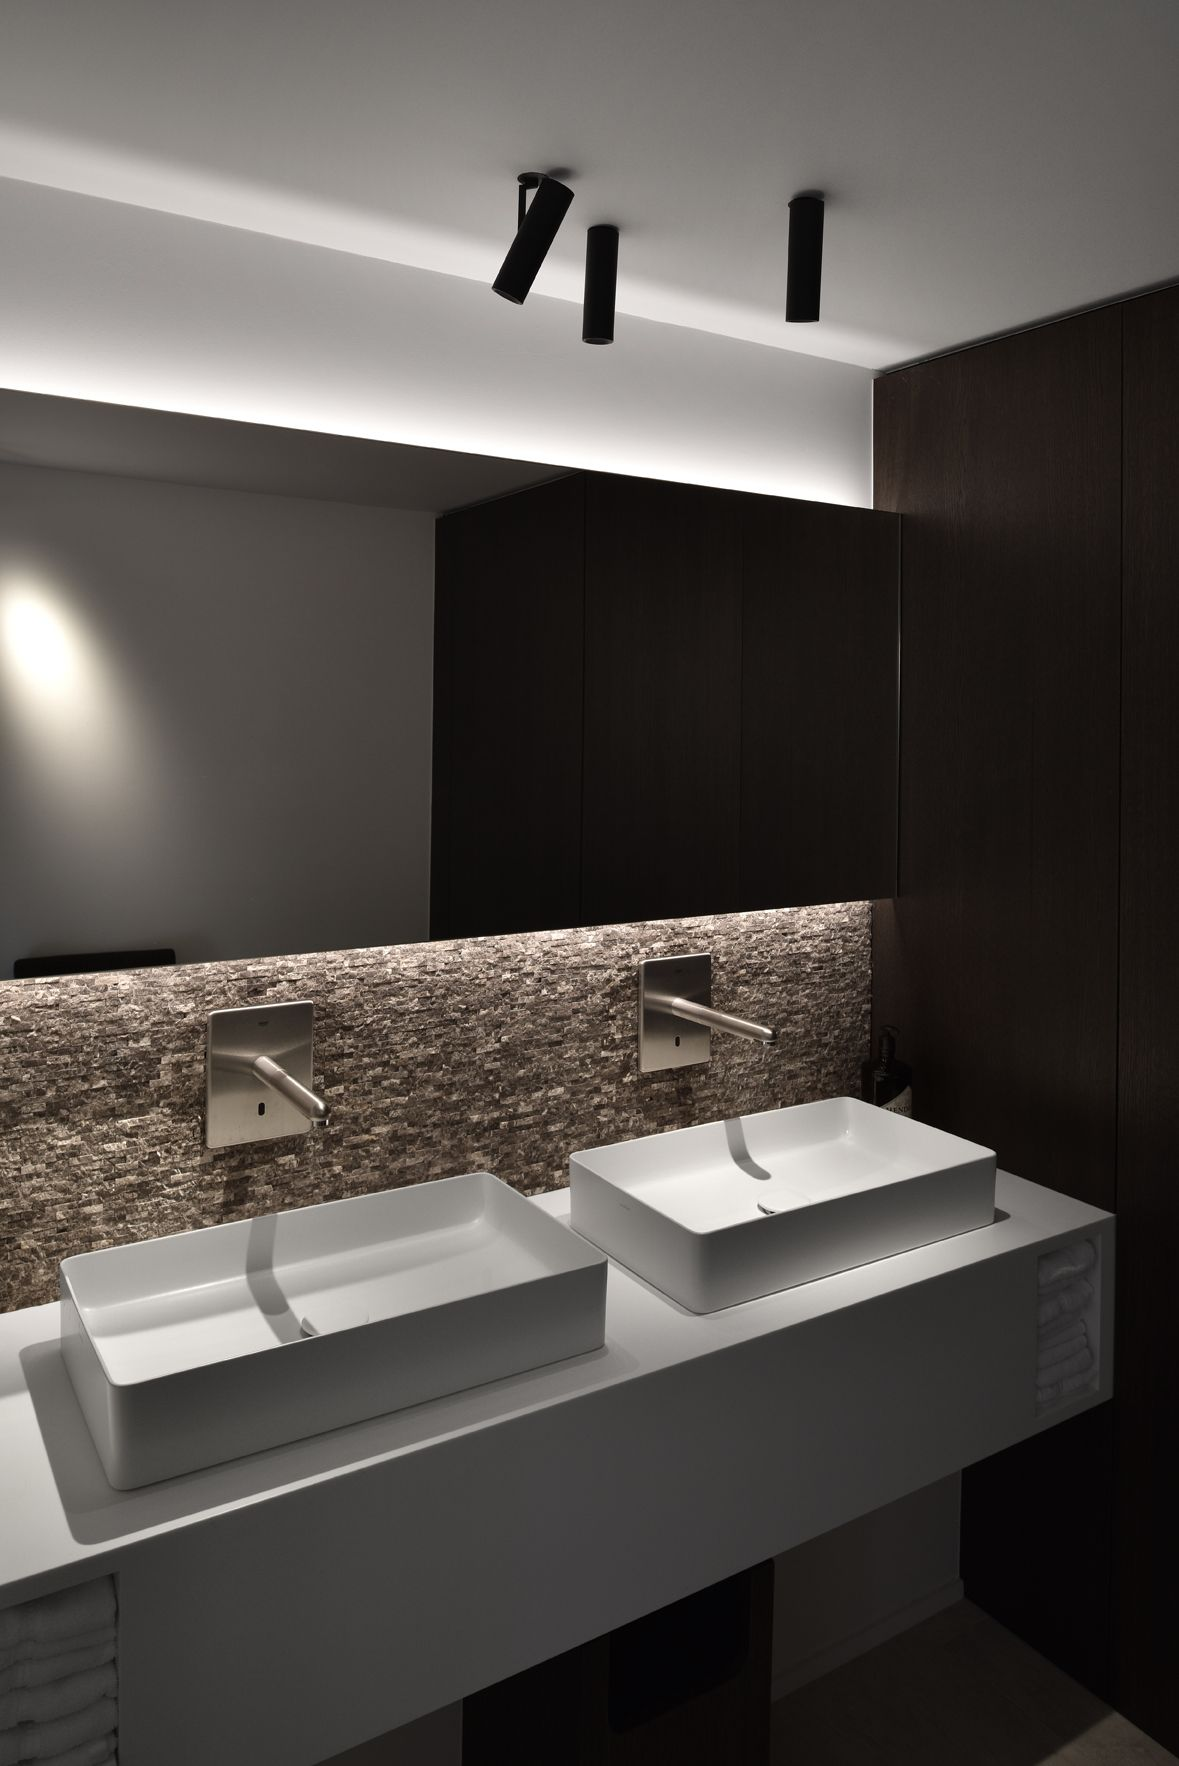 Bathroom lighting by kreon interior bathroom pinterest kreon tools of light is a trendsetting lighting manufacturer which approaches lighting from an architectural perspective aloadofball Images